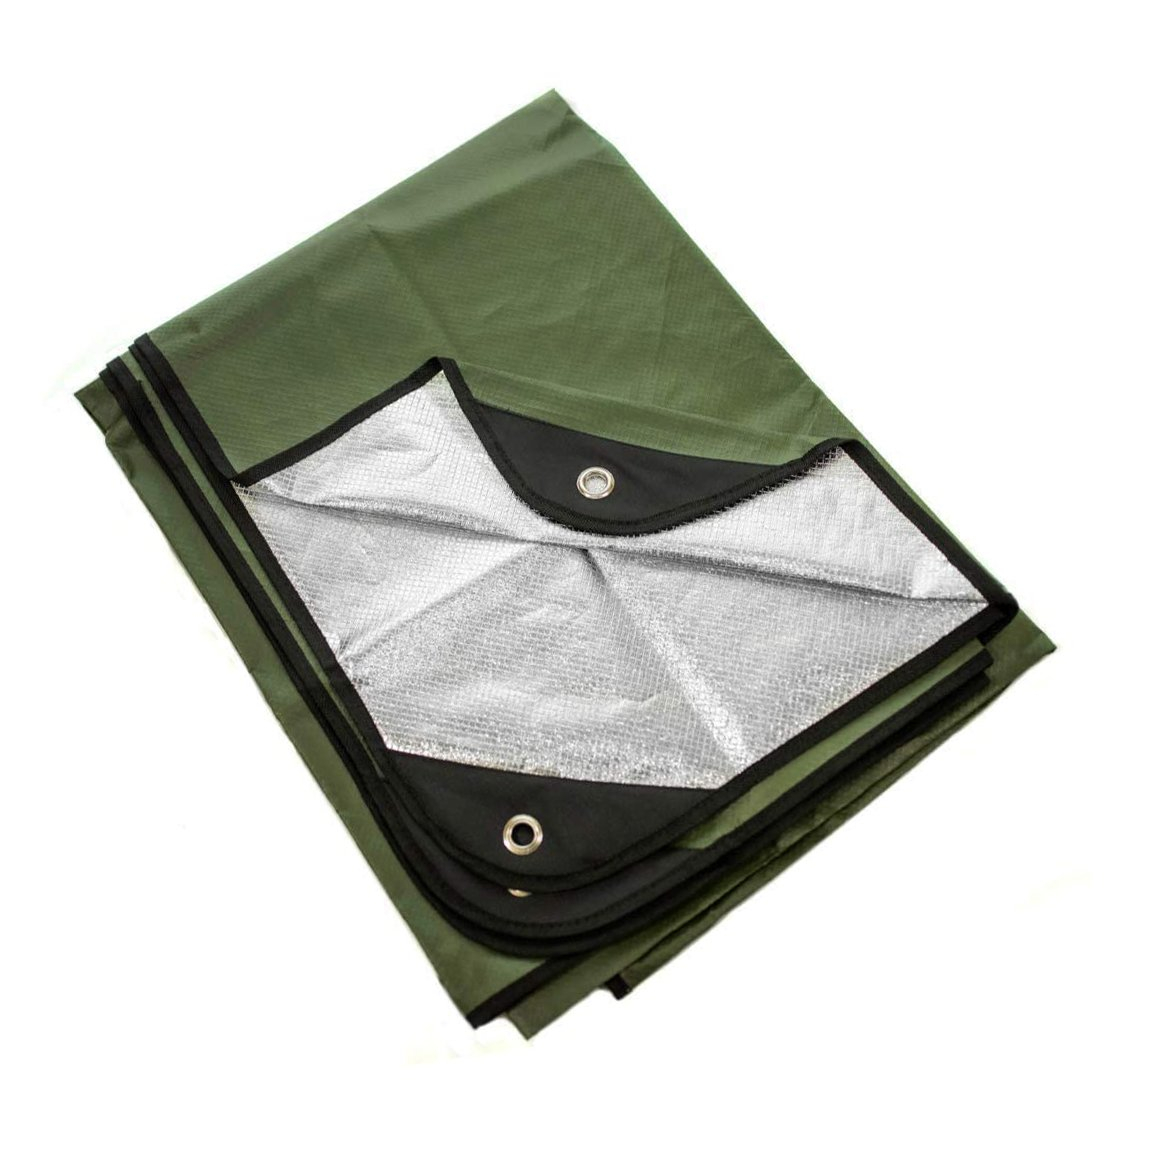 ASR Outdoor Double Sided Thick Thermal Blanket 60 x 82 Inch